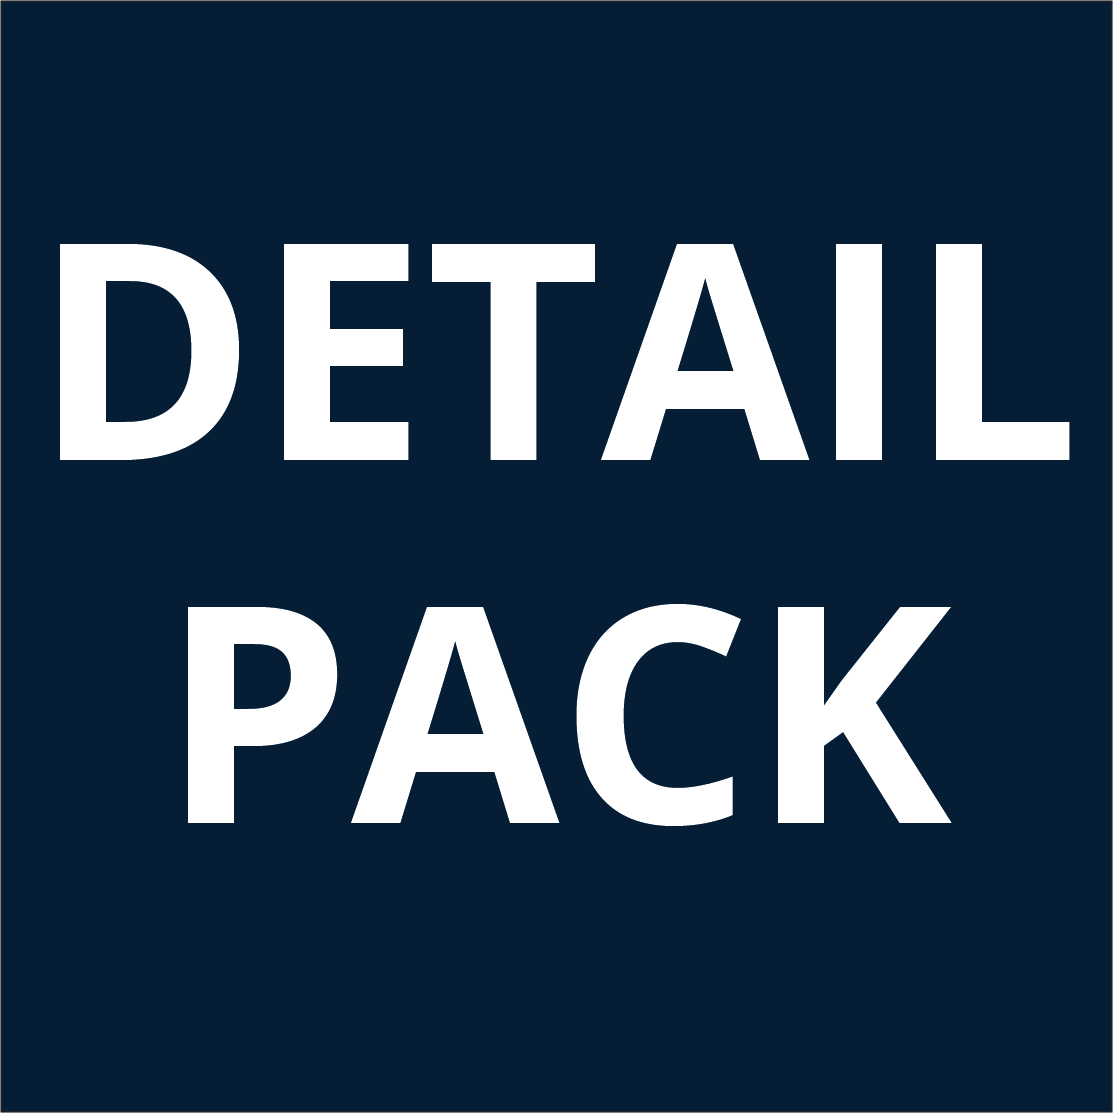 Includes detailing detail pack